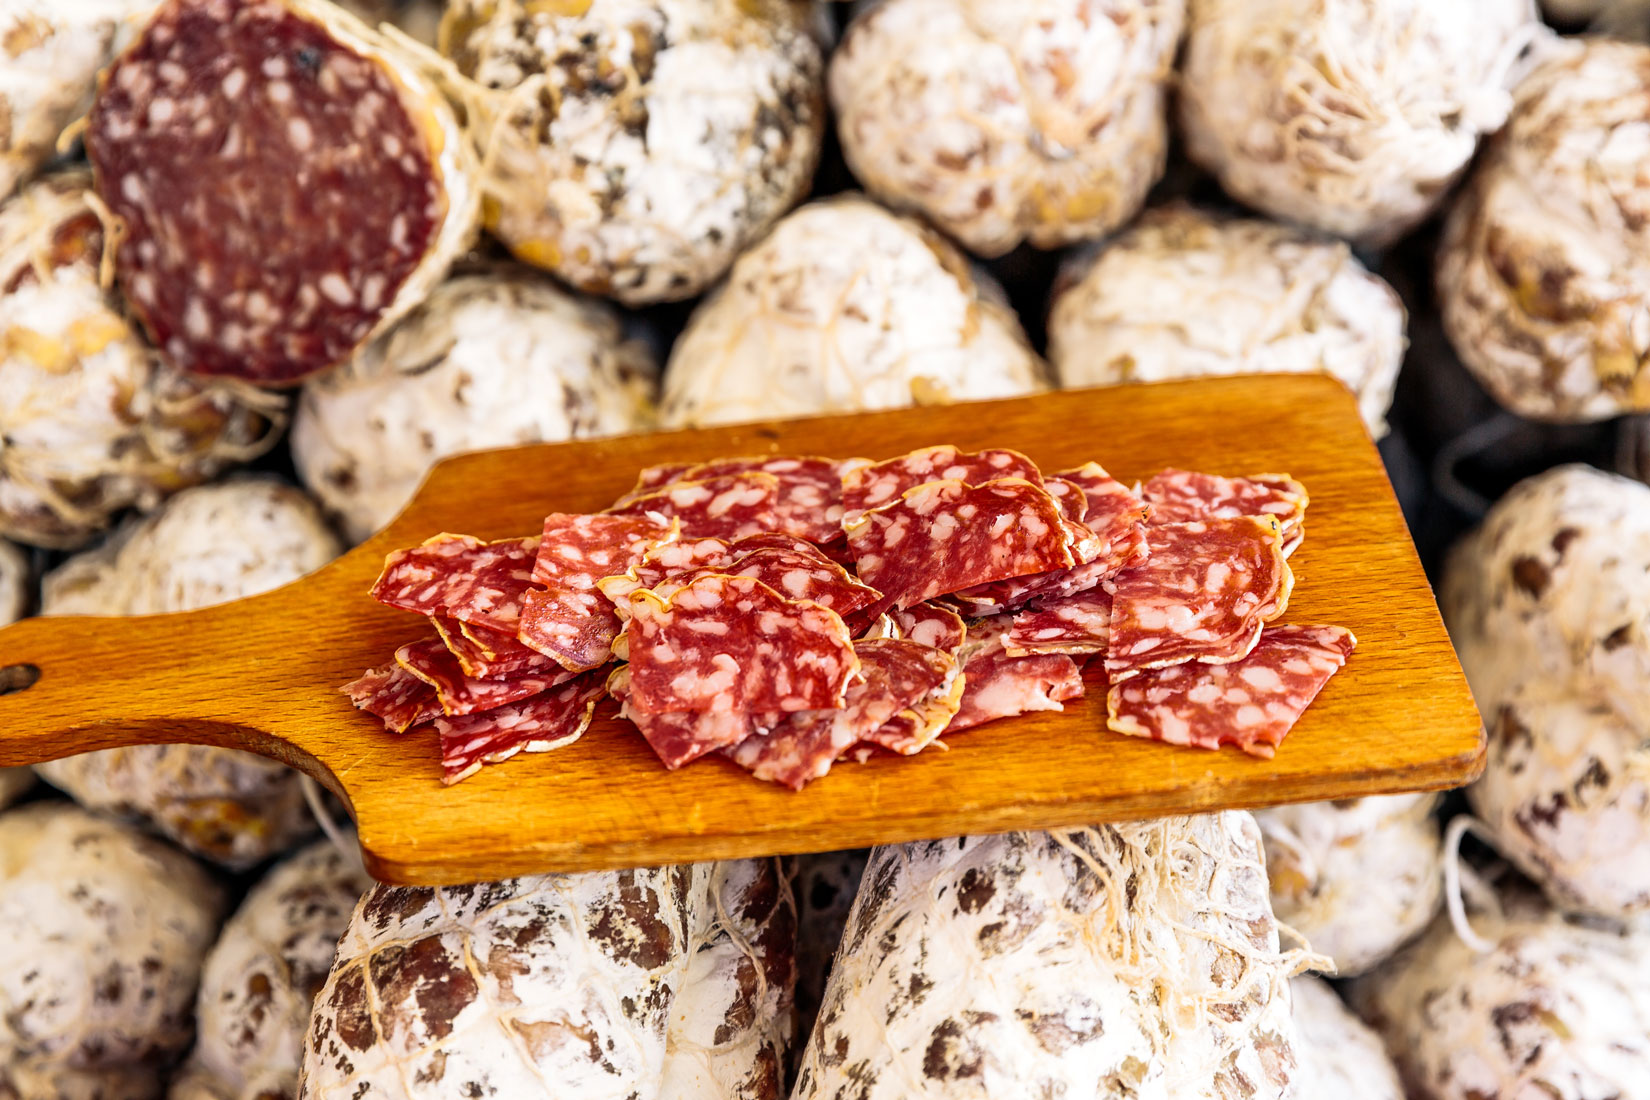 A wooden cutting board holding slices of fine meats.